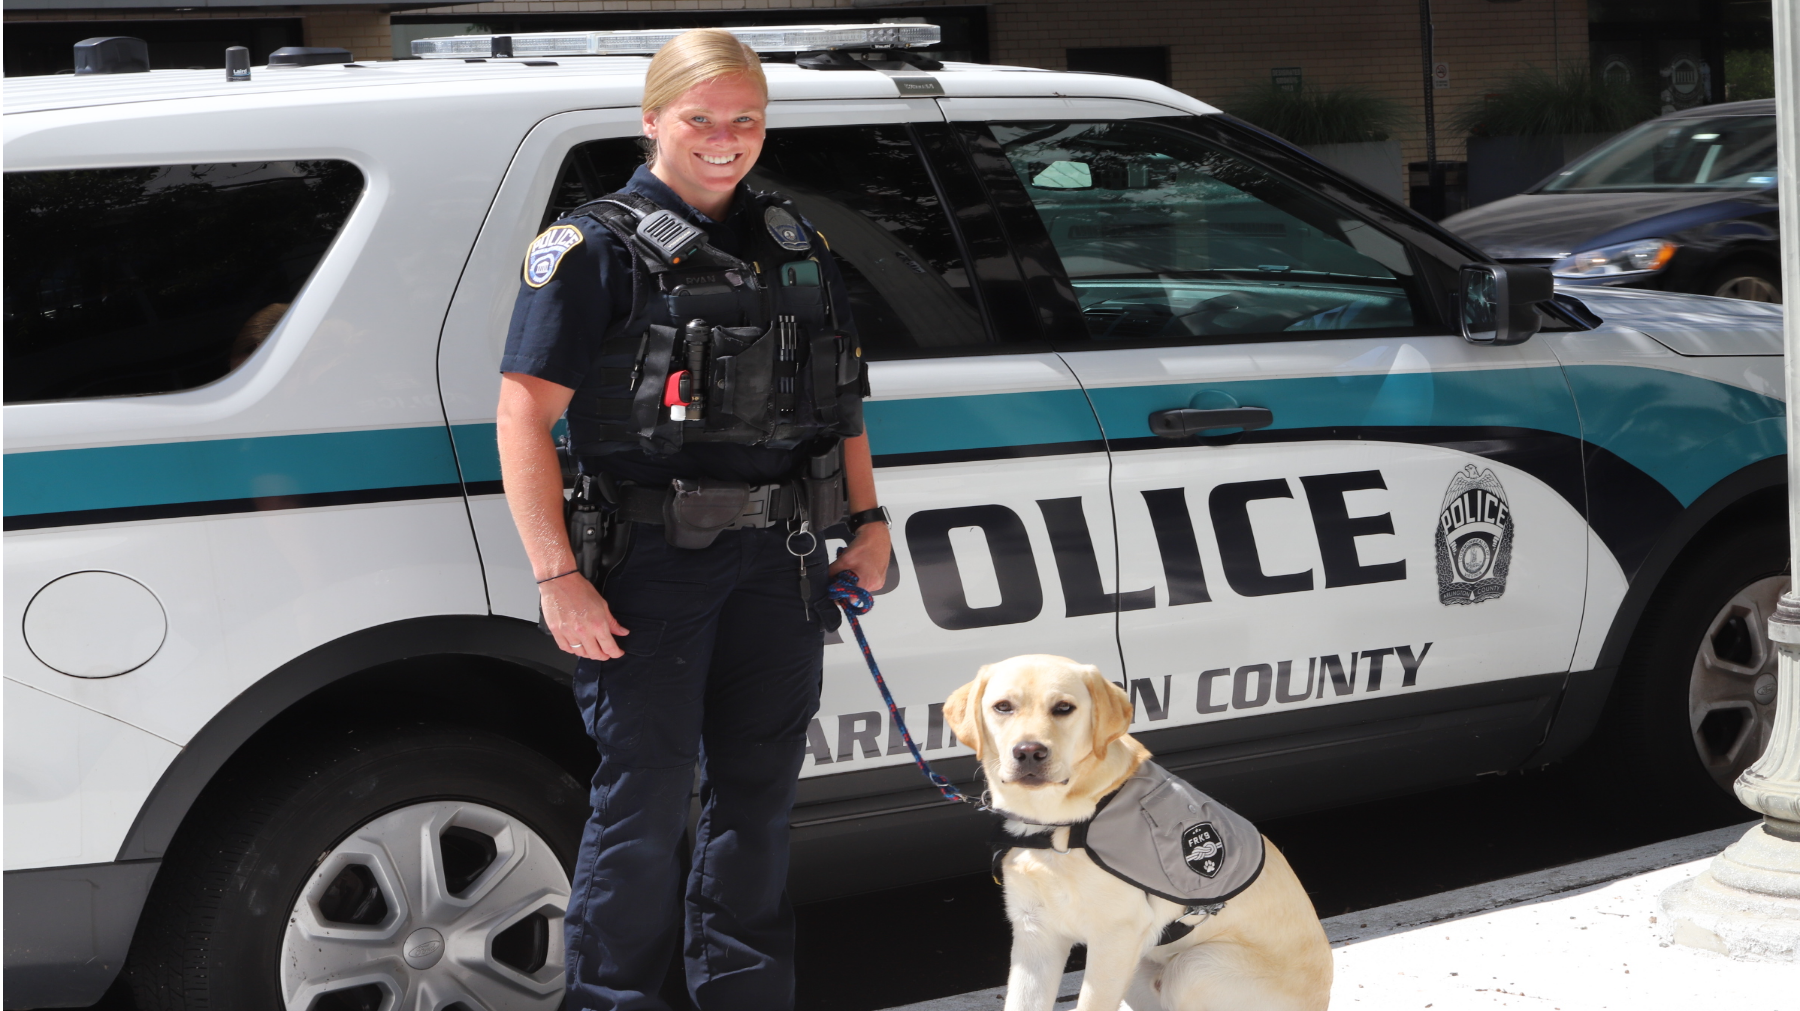 Officer with service dog in front of cruiser